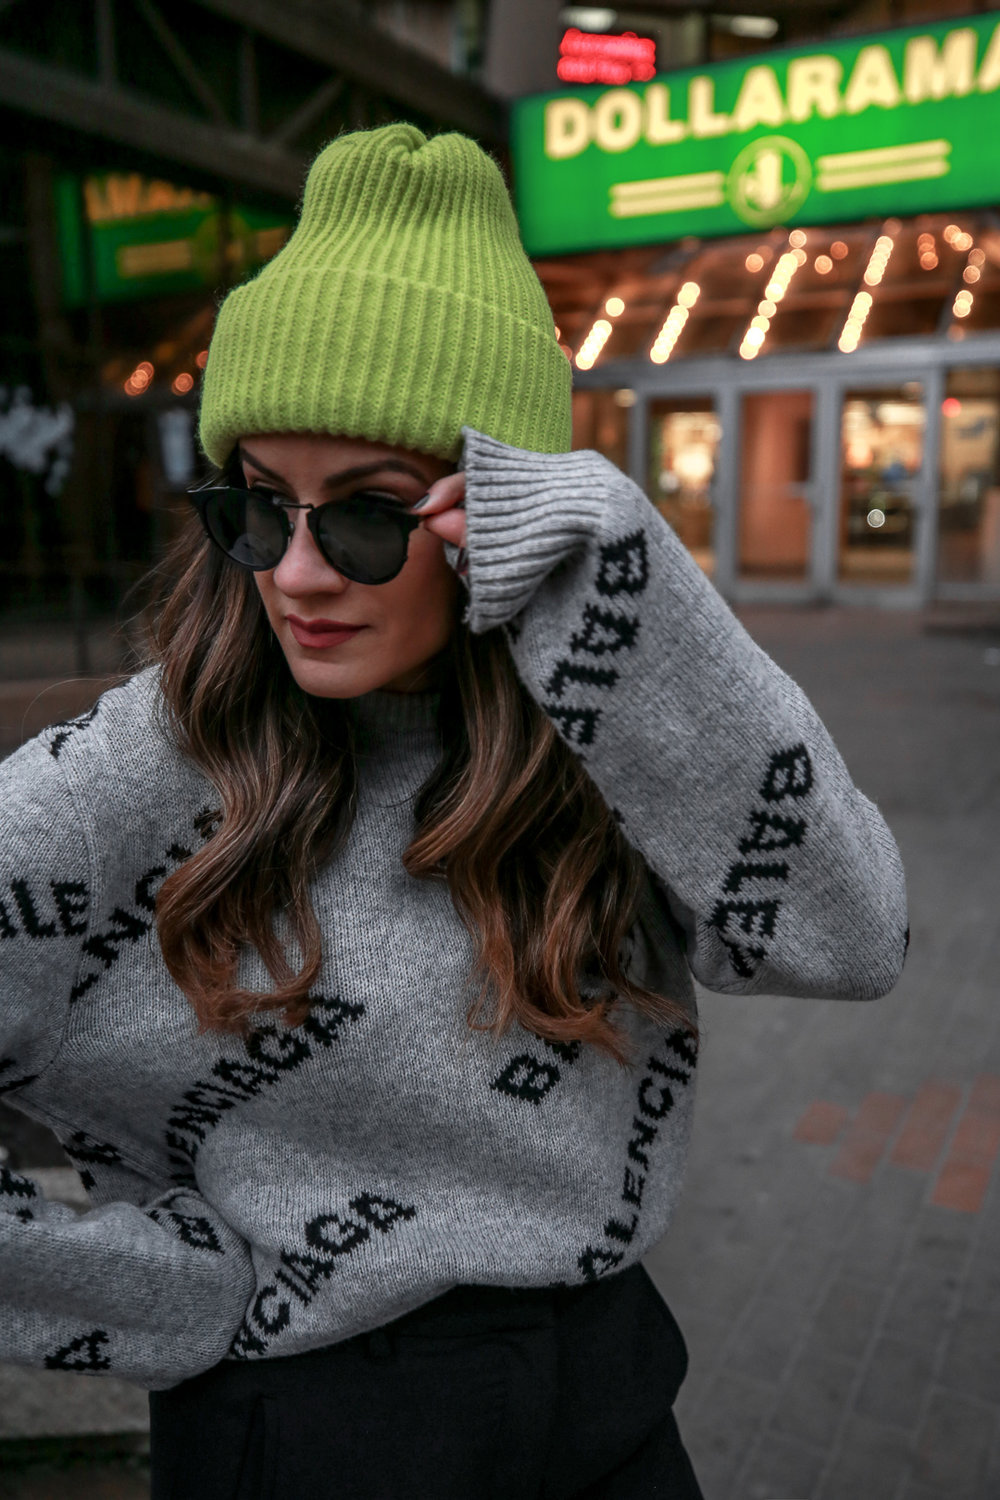 Nathalie Martin wearing Balenciaga cropped logo sweater, Aritzia black Jallade pant, Saint Laurent white canvas court sneakers, Aritzia navy pinstripe Stedman coat, neon green beanie, Bonlook Way sunglasses, street style, woahstyle.com_3934.jpg